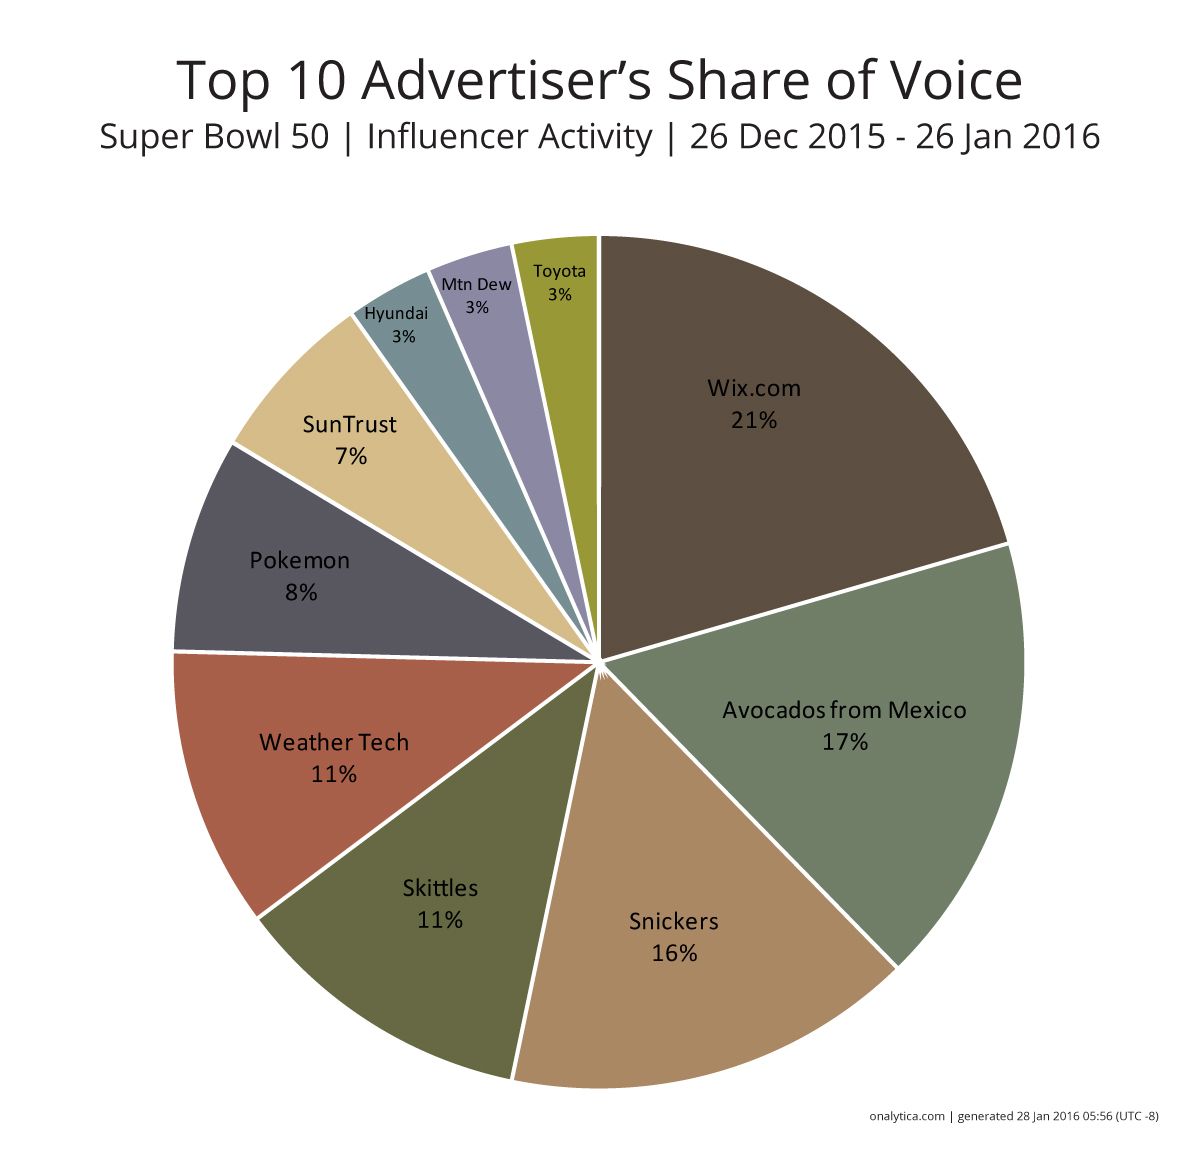 Onalytica - The SuperBowl- top 50 influencers - Advertisers-SoV